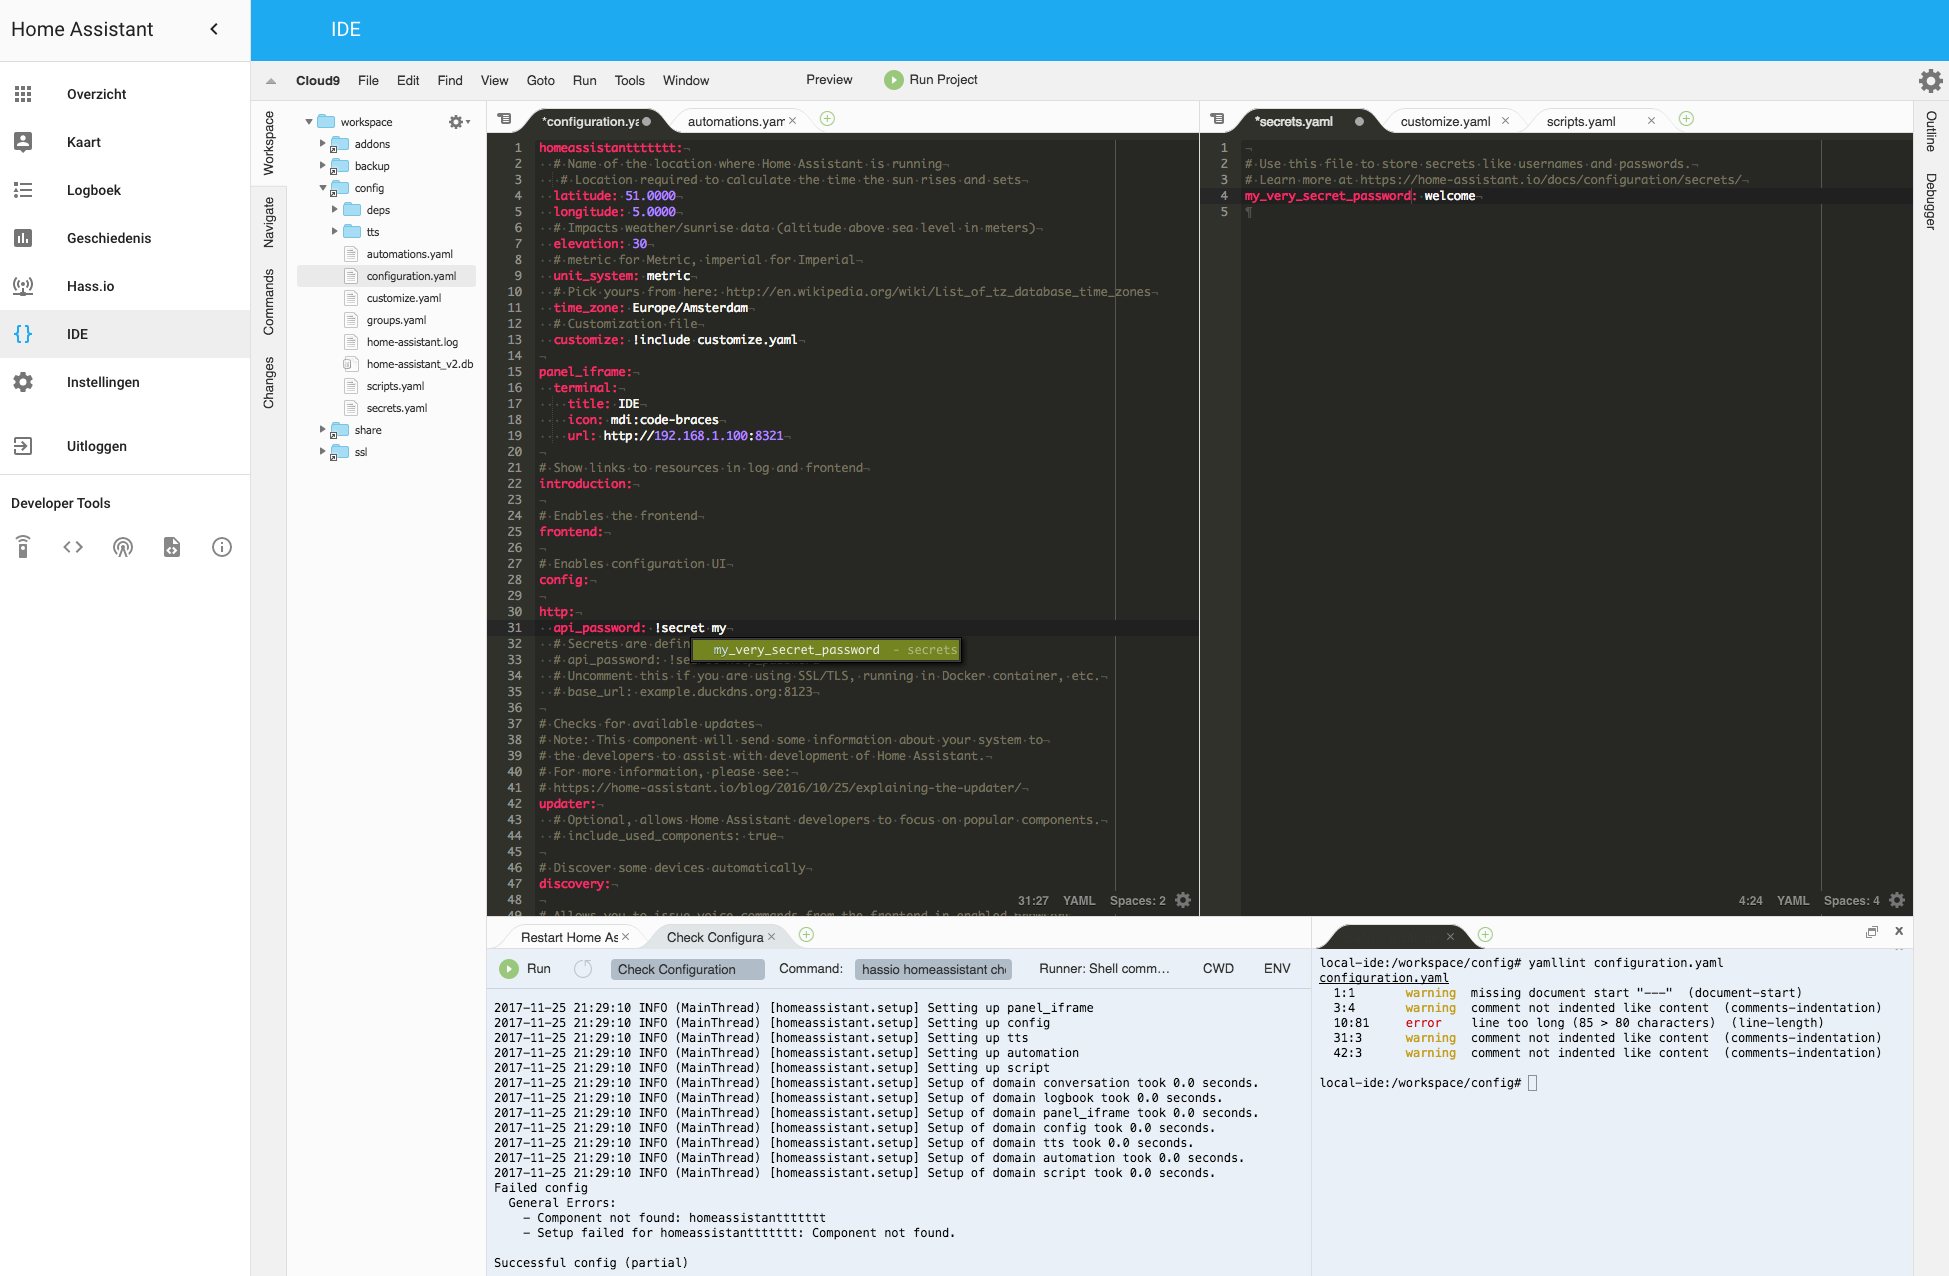 IDE in the Home Assistant Frontend